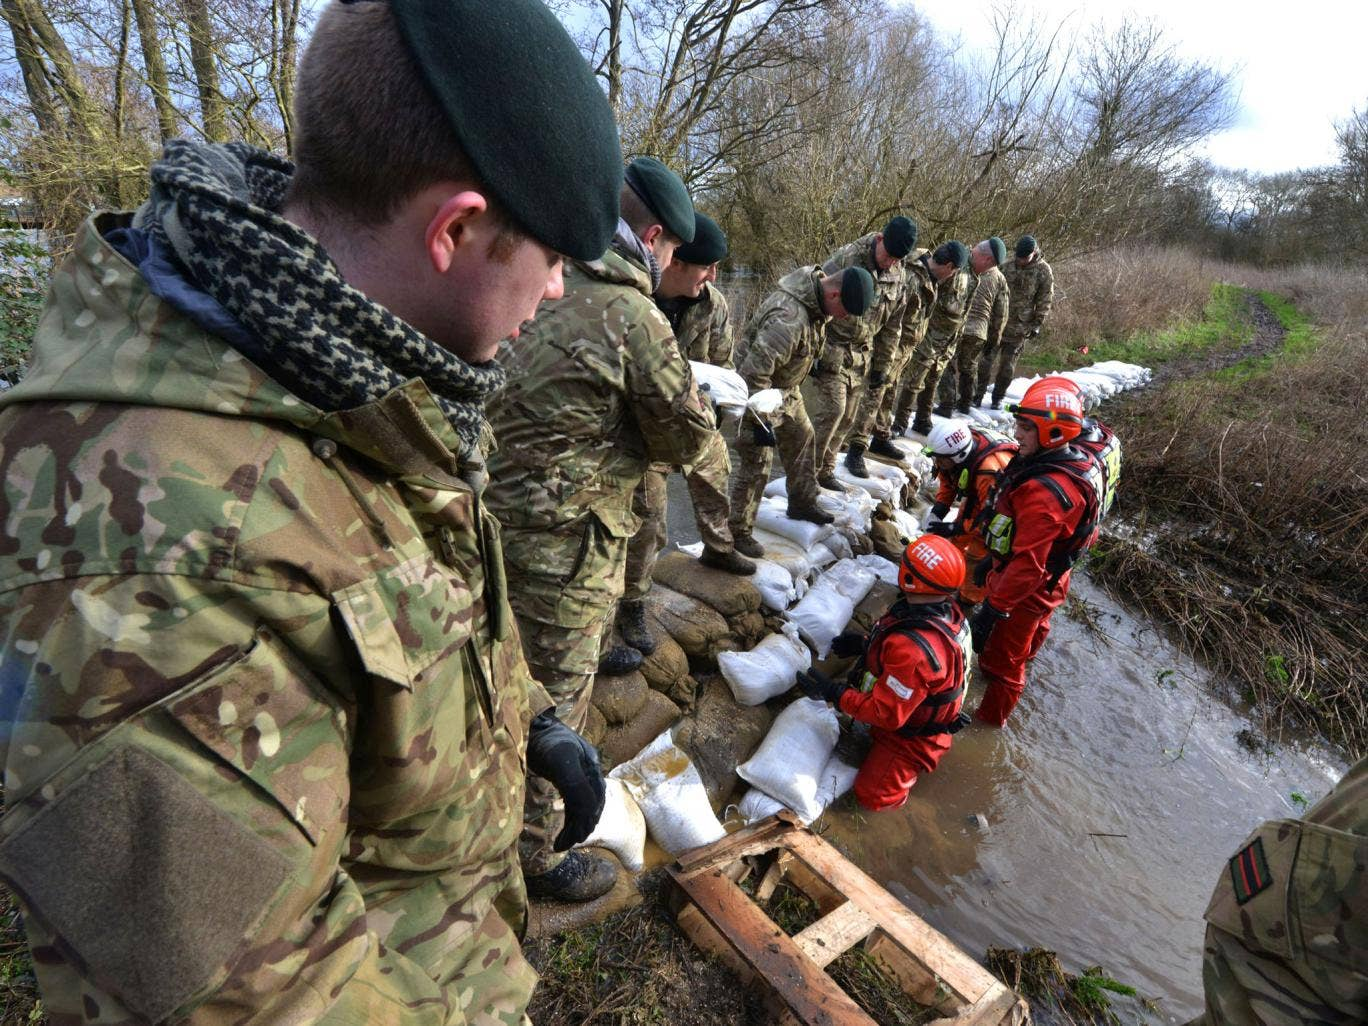 Reserve soldiers of 7 Battalion The Rifles, deployed alongside members of Berkshire Fire and Rescue Service, working hard to dam a breach in the Kennet Canal that threatened an electrical sub-station near Burghfield, south of Reading, as the military were